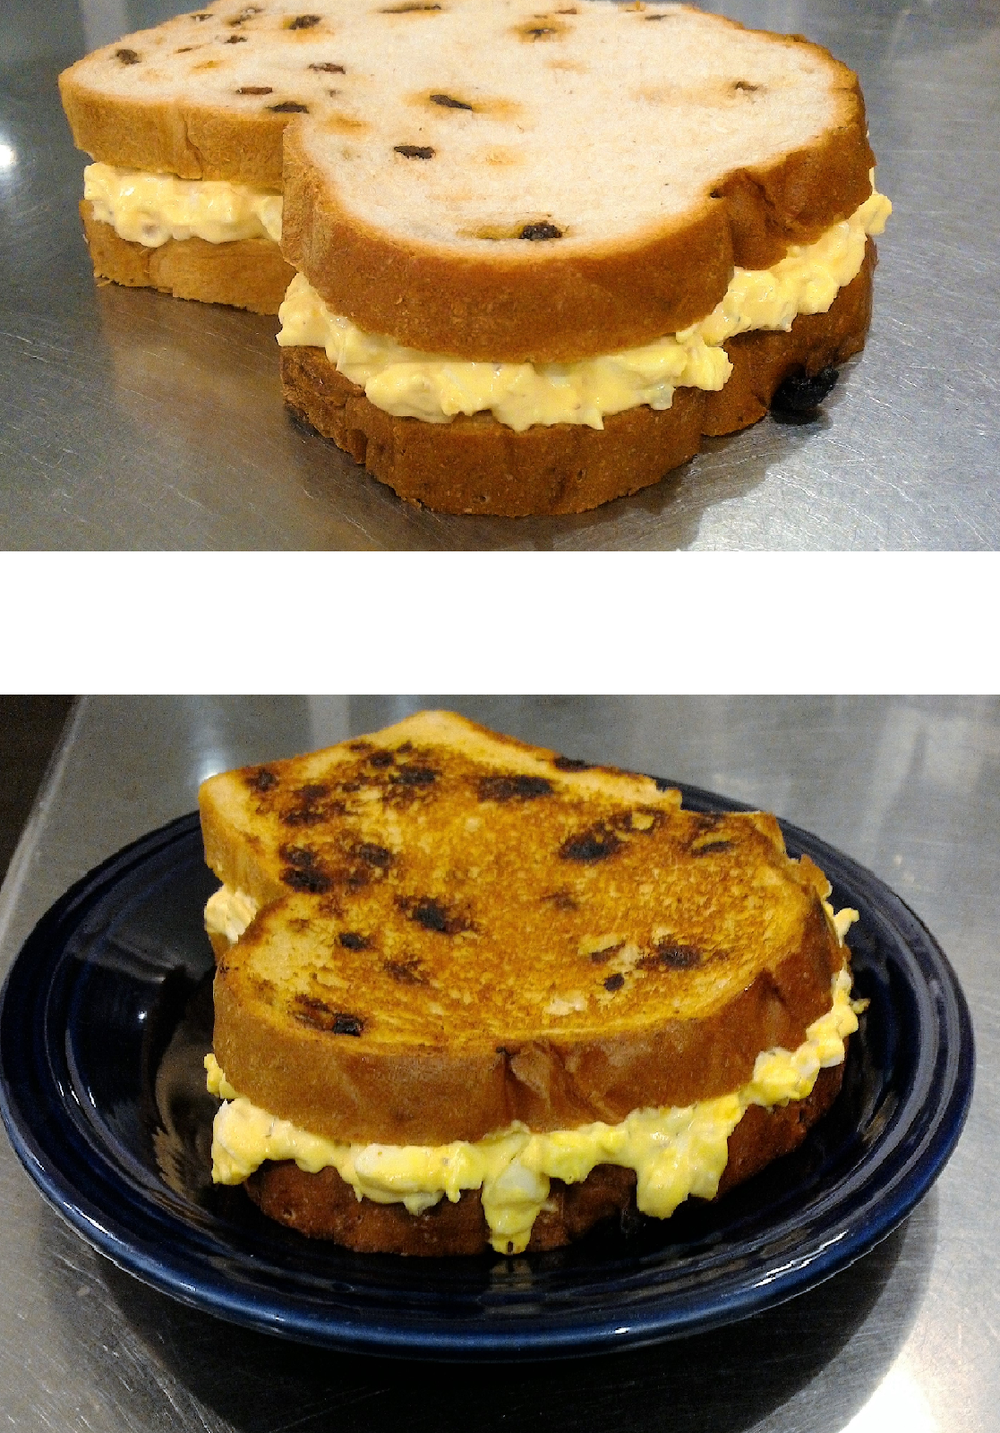 Egg Salad on Raisin